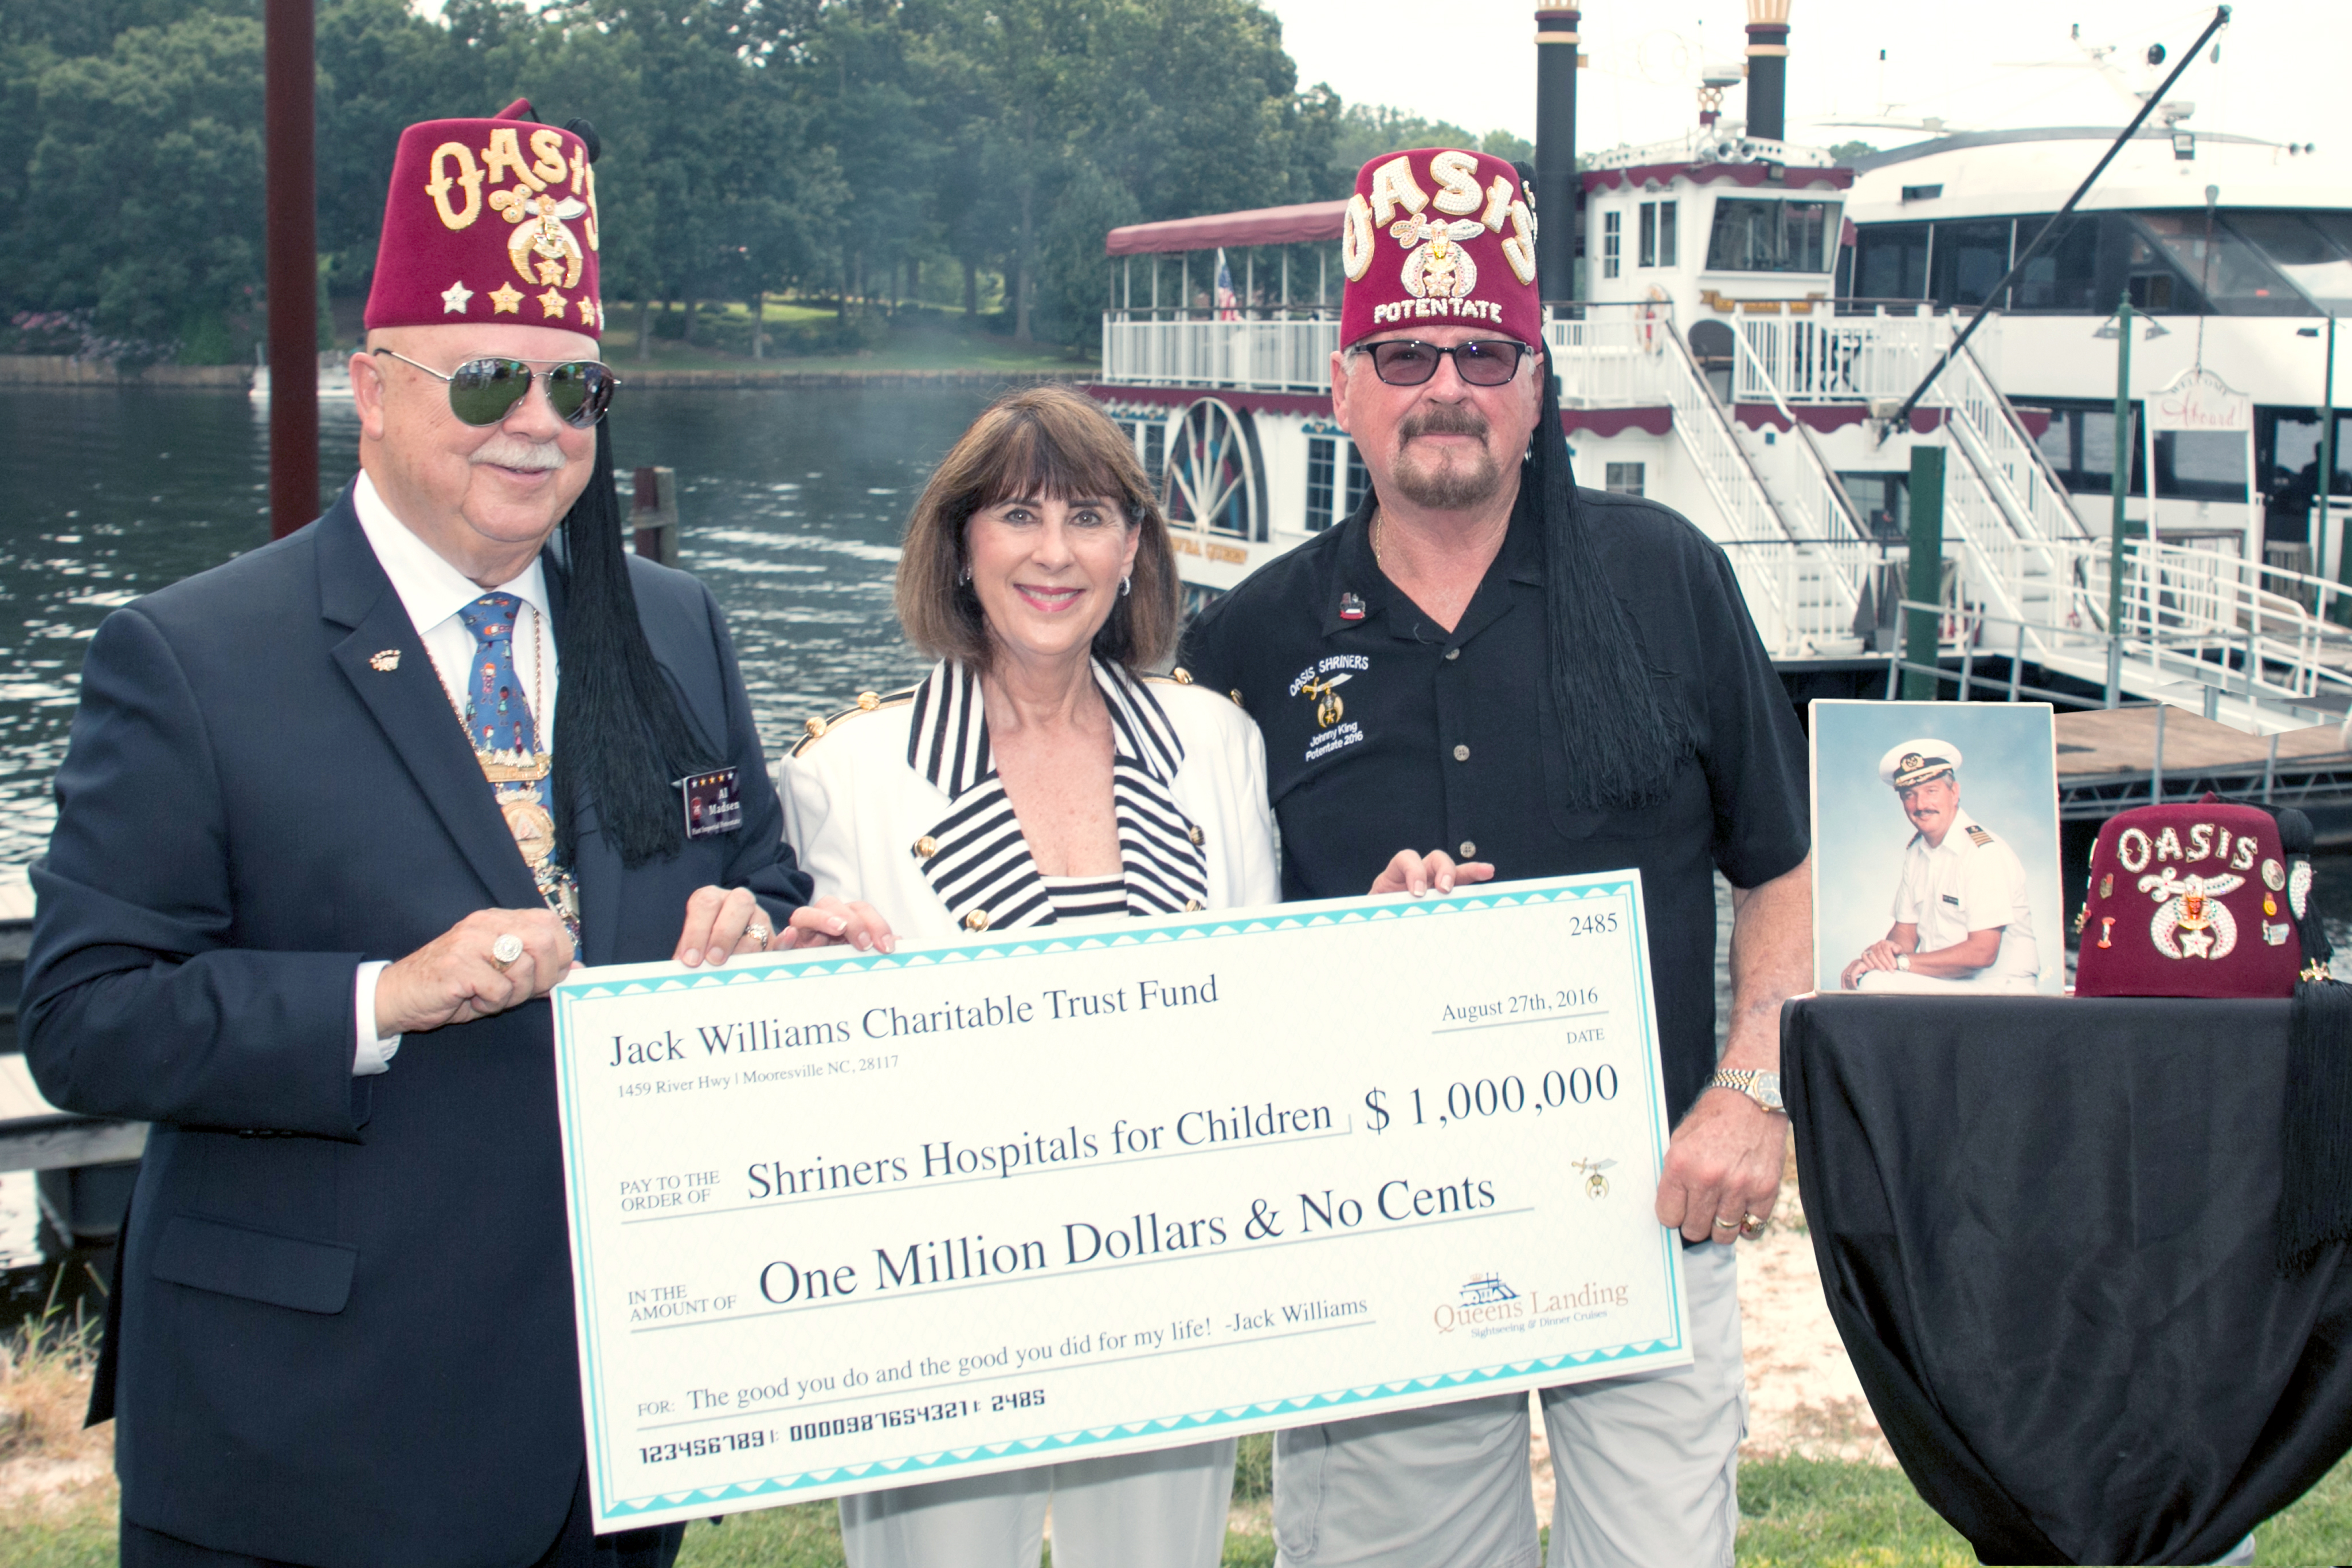 Past Imperial Potentate Al Madsen (left) and current Potentate of the Oasis Temple Johnny King (right), received a $1 million donation on Saturday for the Shriners Hospitals for Children from the Trust Fund of the late Jack R. Williams. Williams was the owner of Queens Landing in Mooresville, NC. Presenting the check on his behalf was Vice-President of the company Deborah Harwell (center).